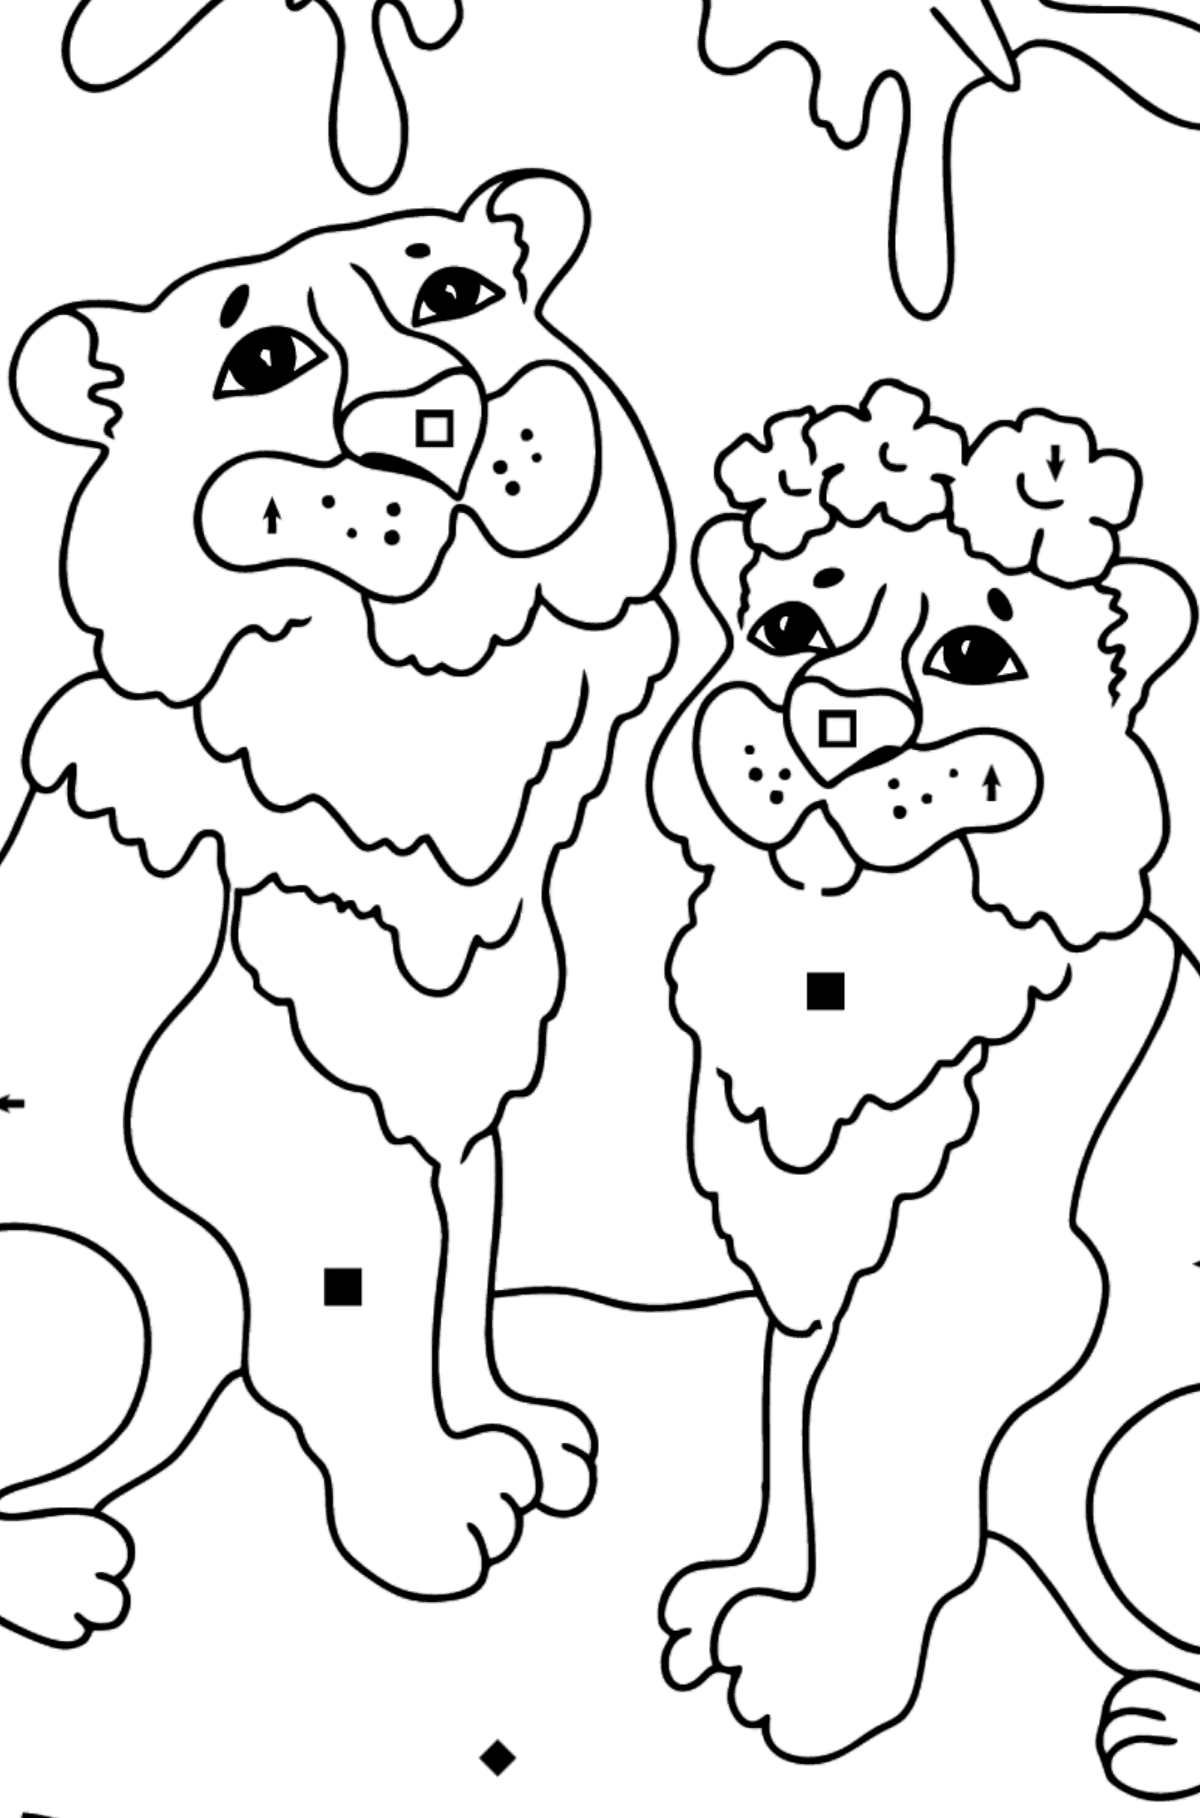 Coloring Page - A Tiger with a Tigress - Coloring by Symbols for Kids